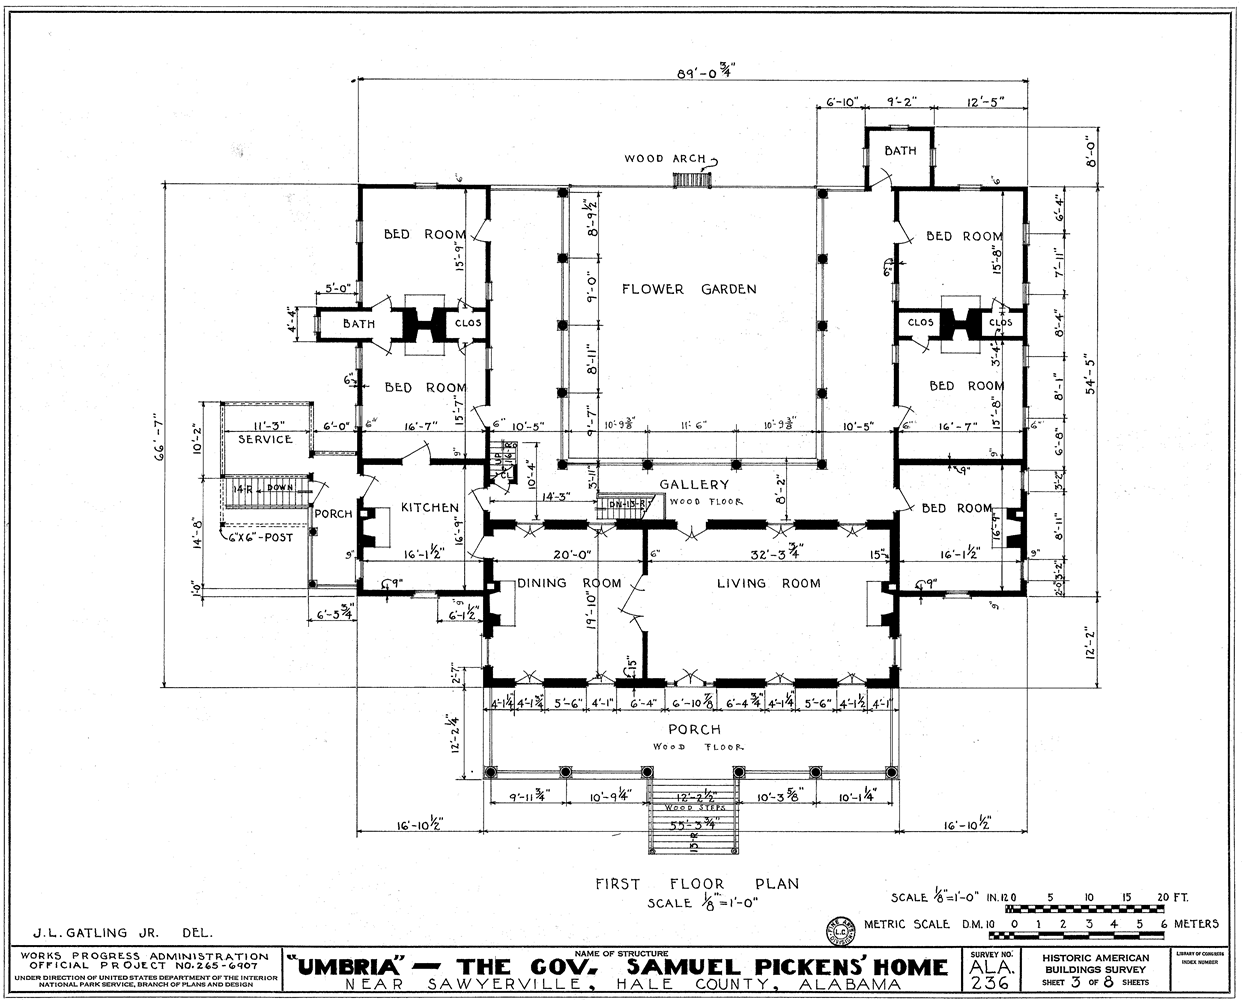 Floor plan architecture home design for Architecture design blueprint